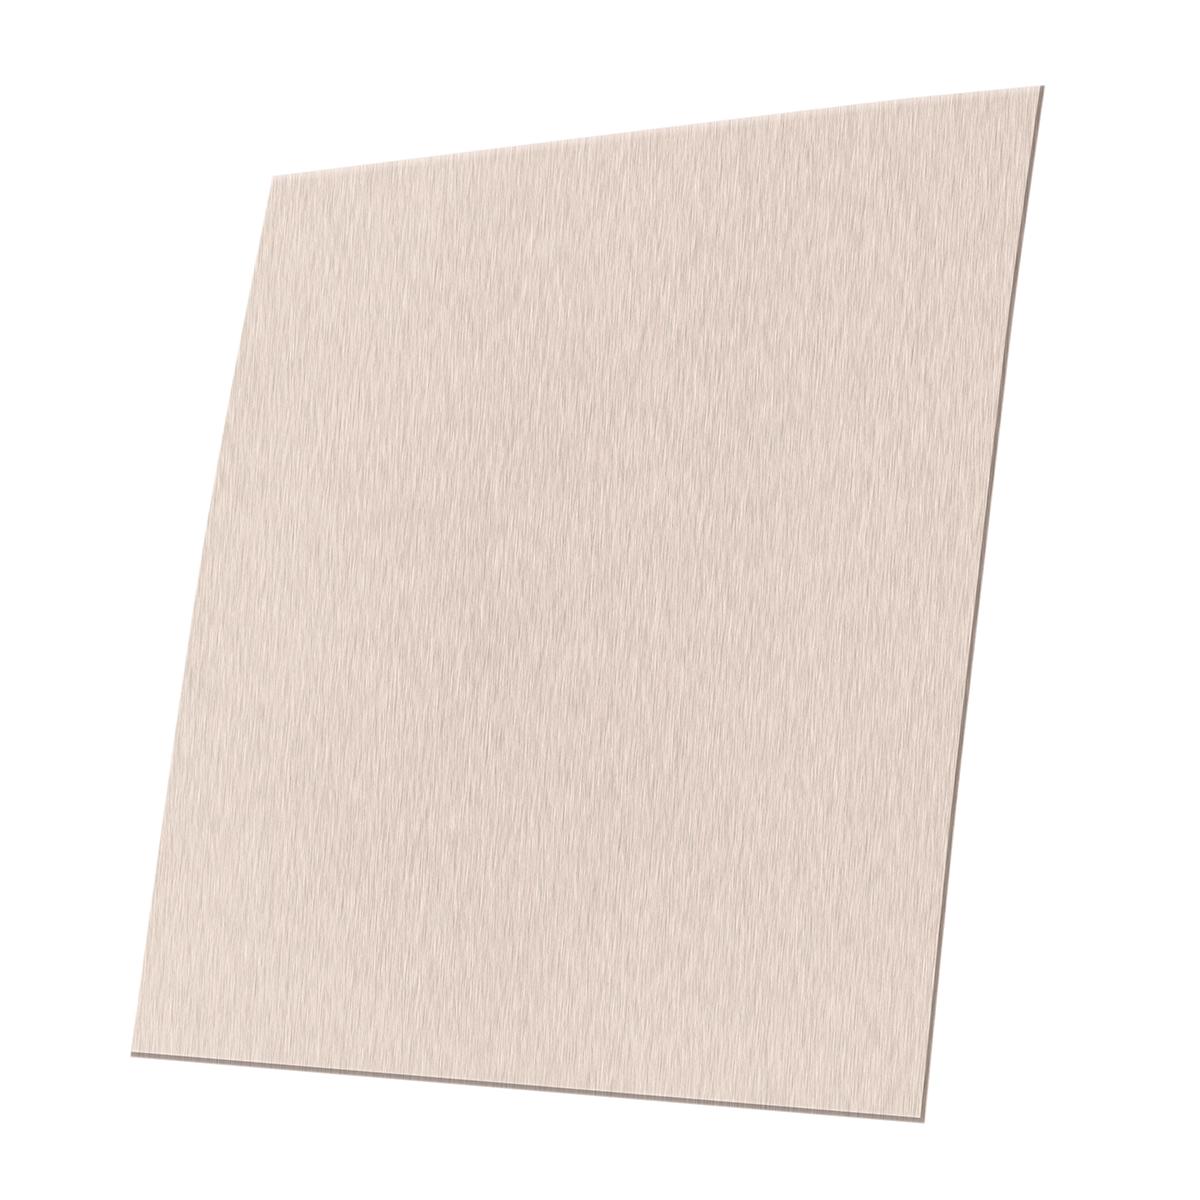 NBLJF Pure Nickel Plate Sheetfoil Mainly Used in Scientific Research Thickness 0.1Mm to 0.3Mm Width 100Mm to 200Mm Length 1M,0.1x200x1000mm